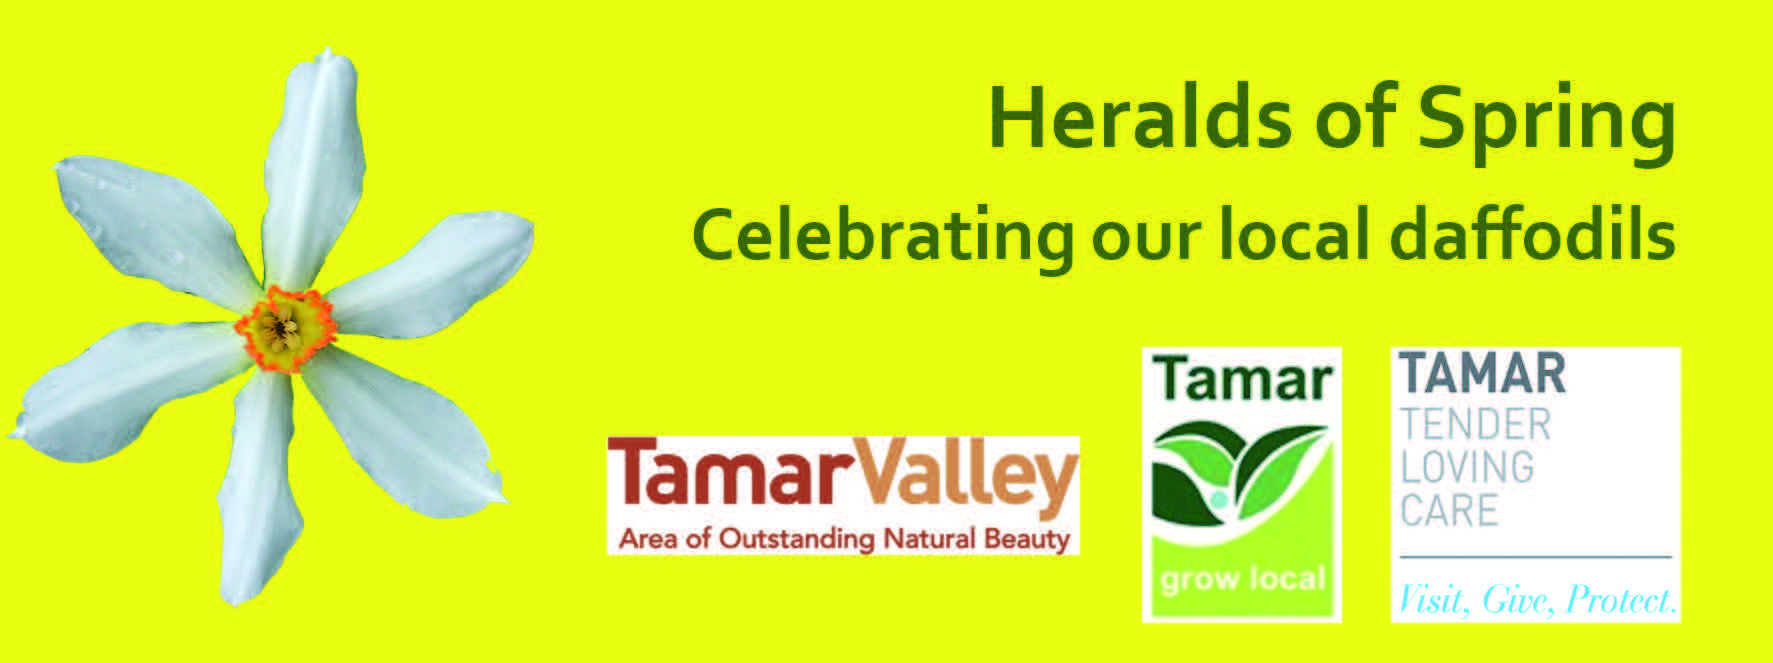 Heralds of Spring - Celebrating our local daffodils